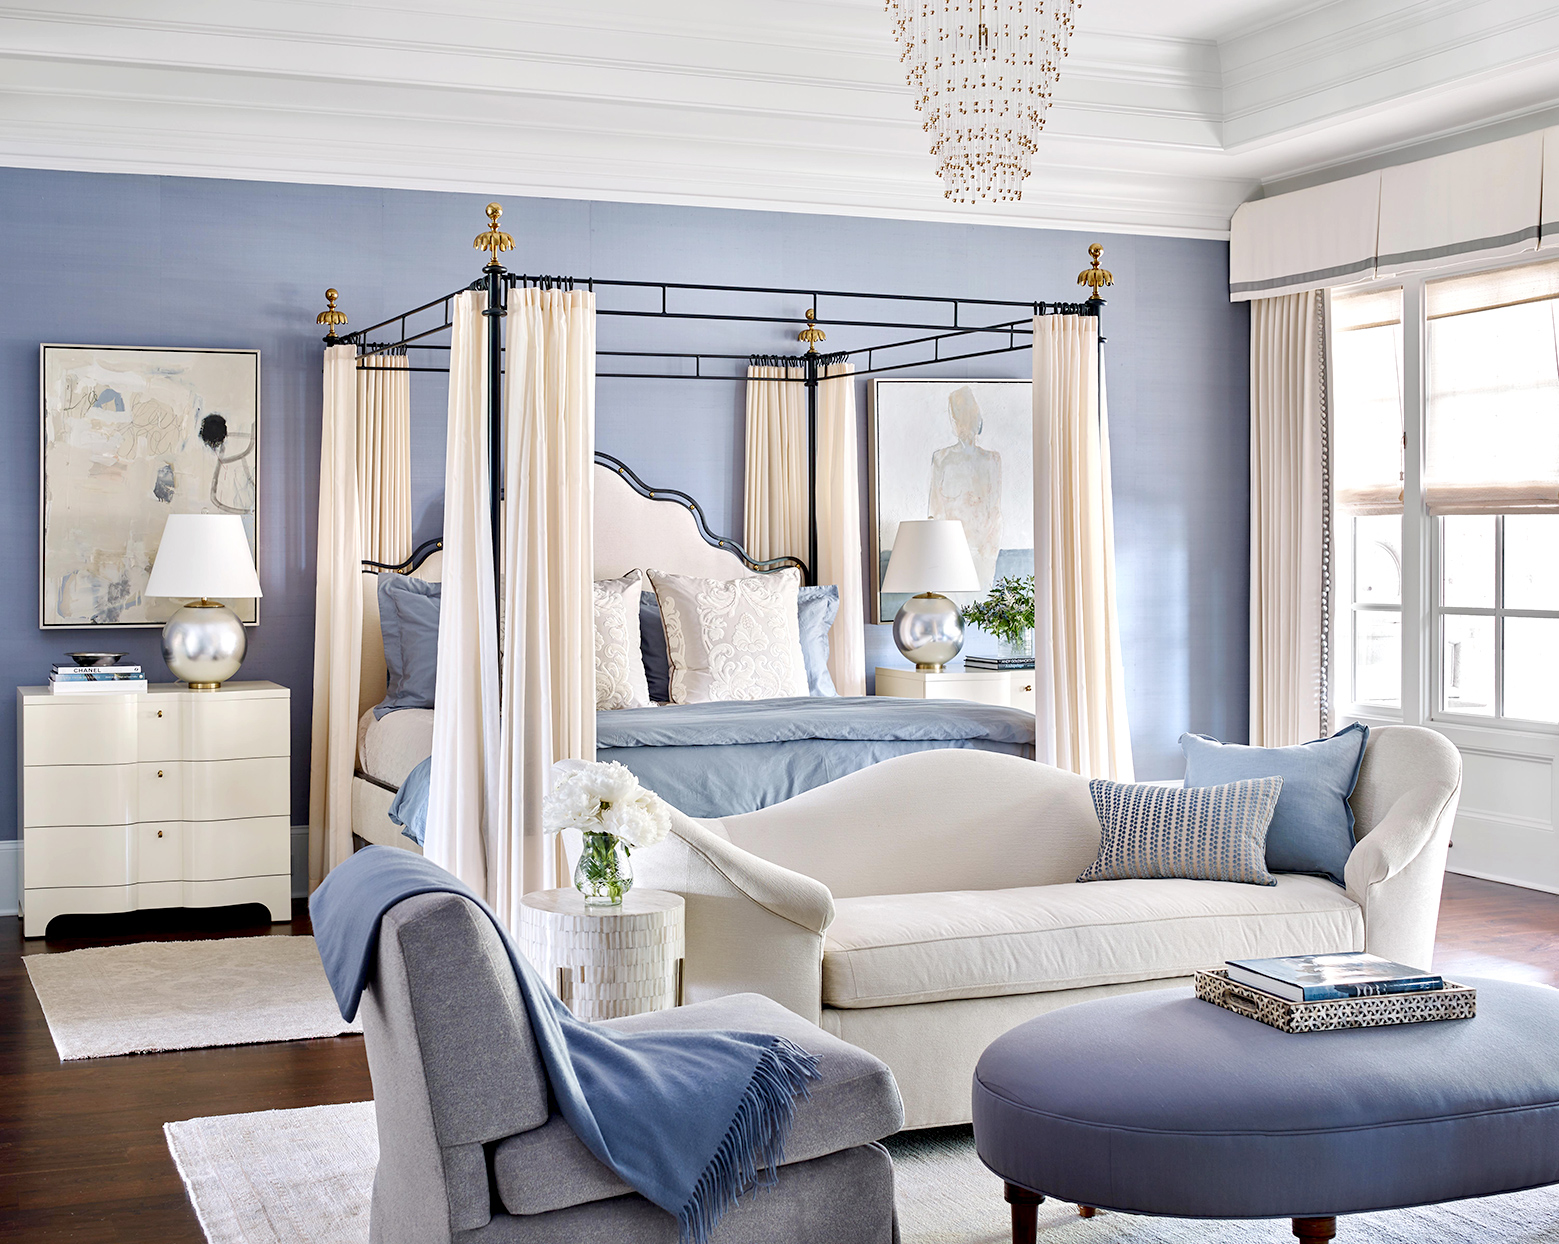 Bedroom with blue walls